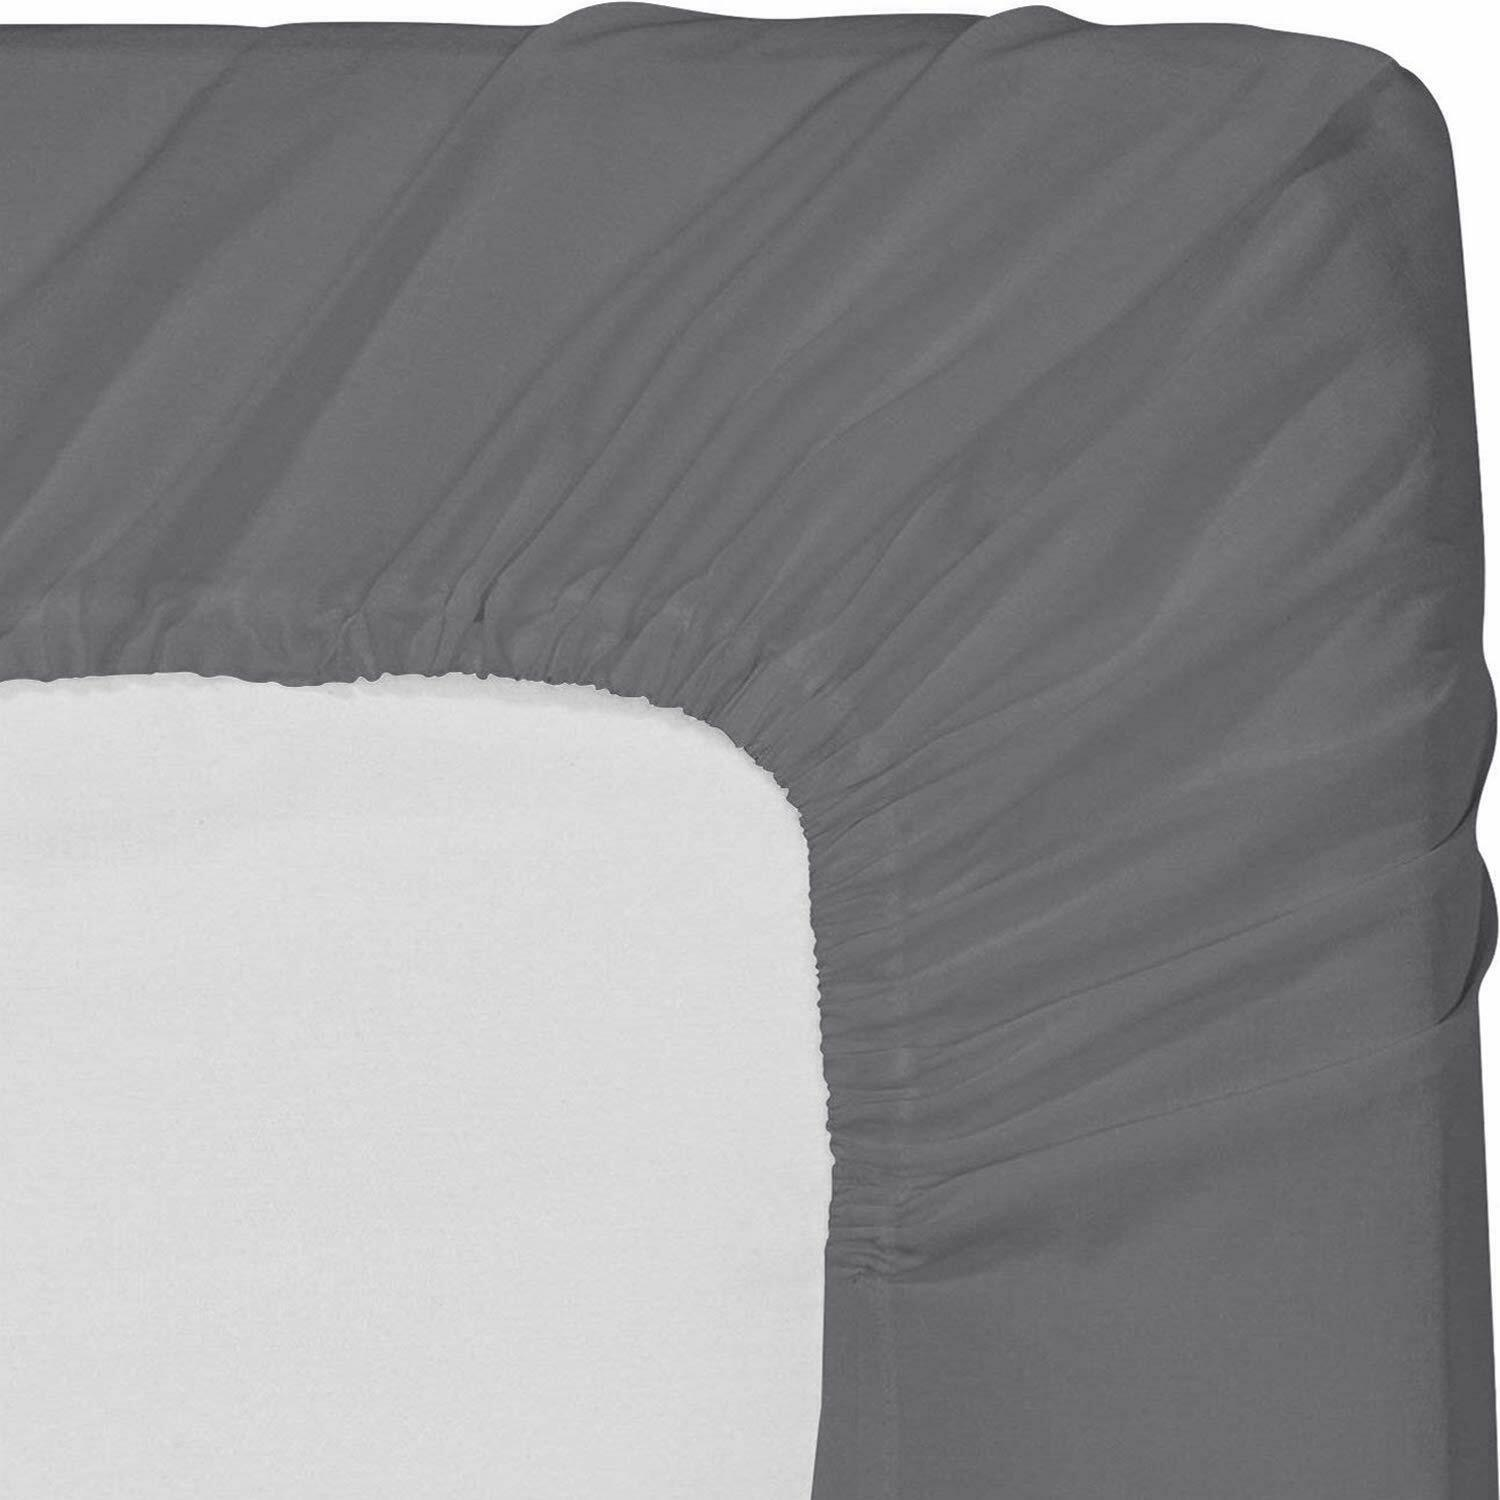 1 queen fitted sheet brand new bright white ultra brushed microfiber hotel sheet